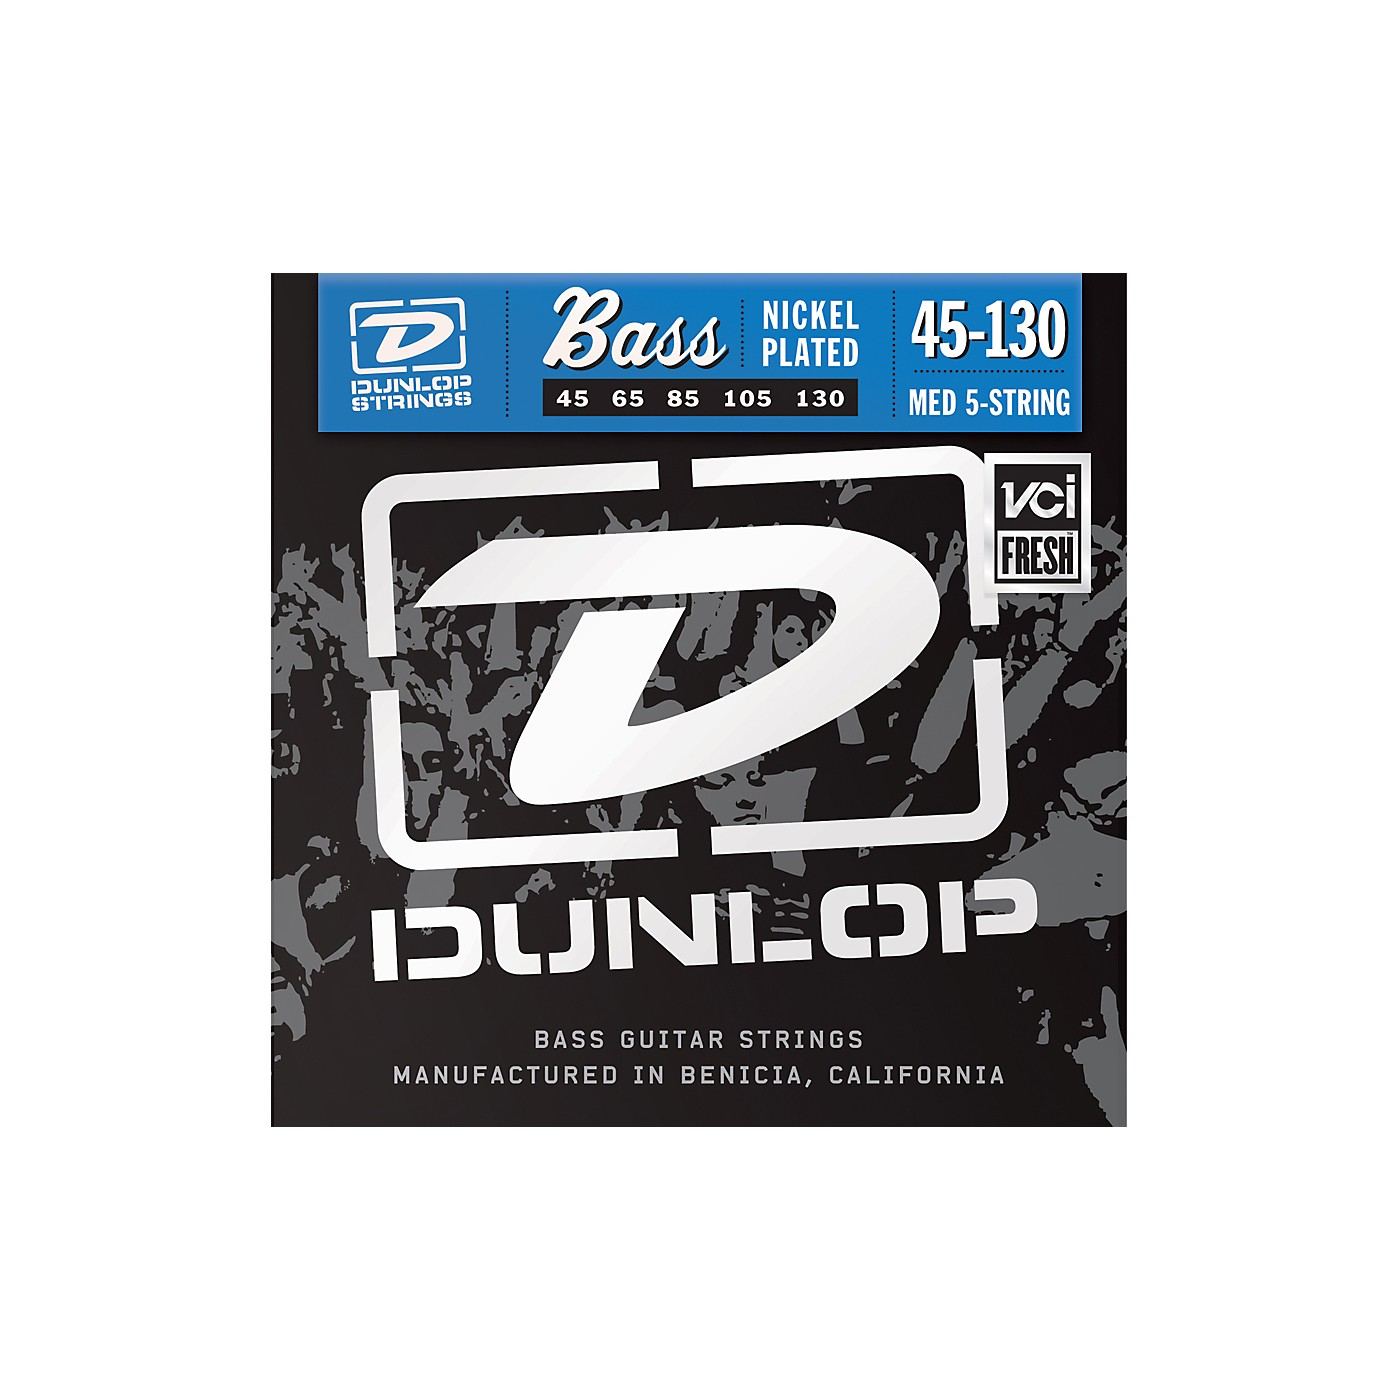 Dunlop Nickel Plated Steel Bass Strings - Medium 5-String with 130 thumbnail